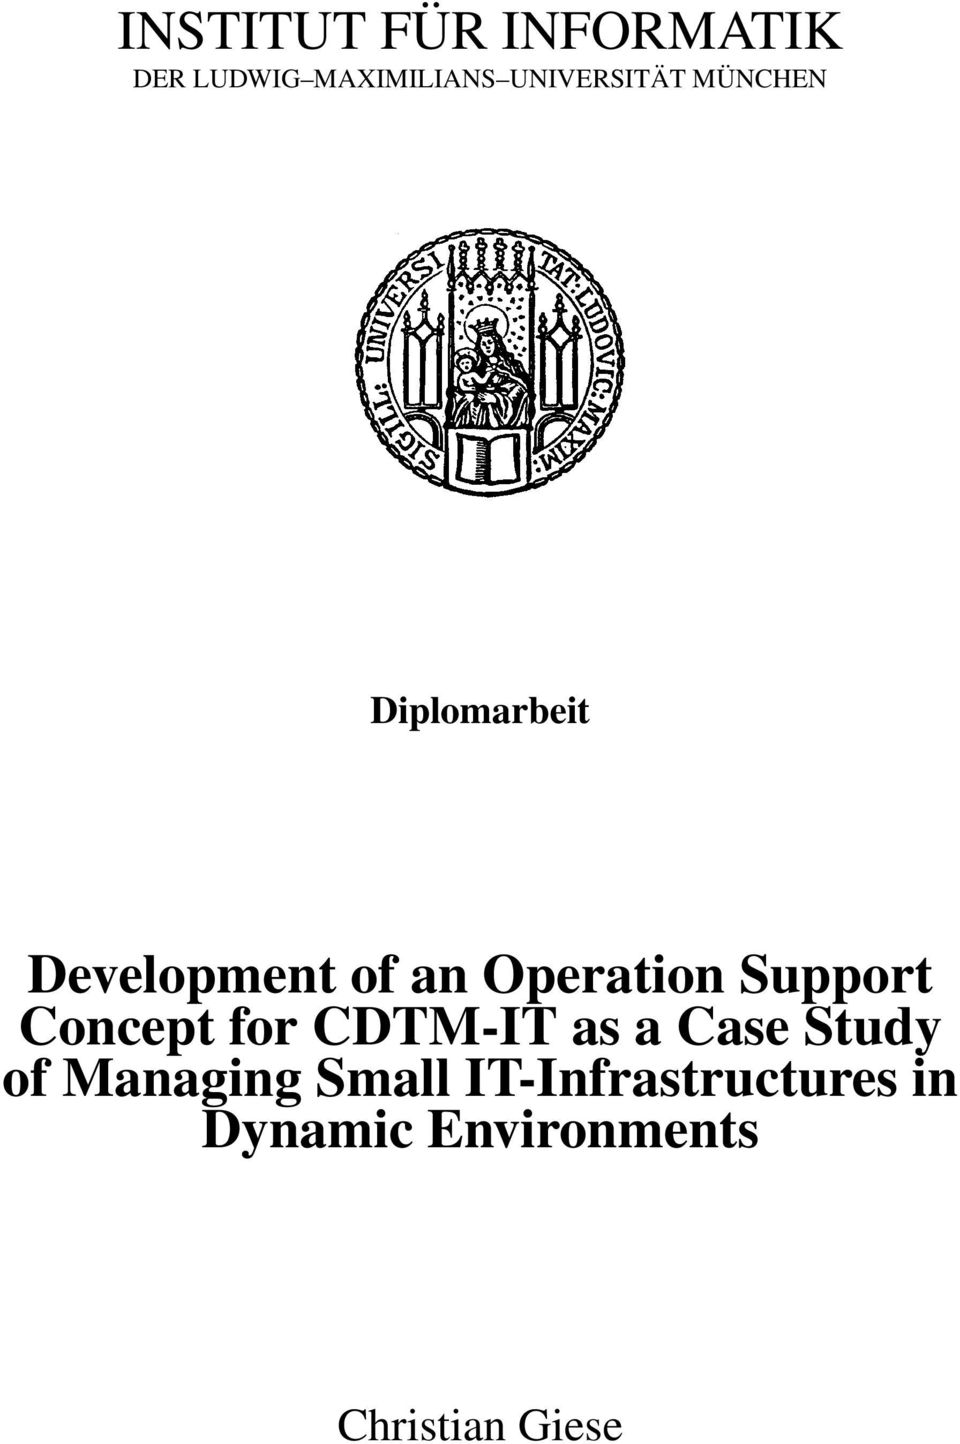 Operation Support Concept for CDTM-IT as a Case Study of